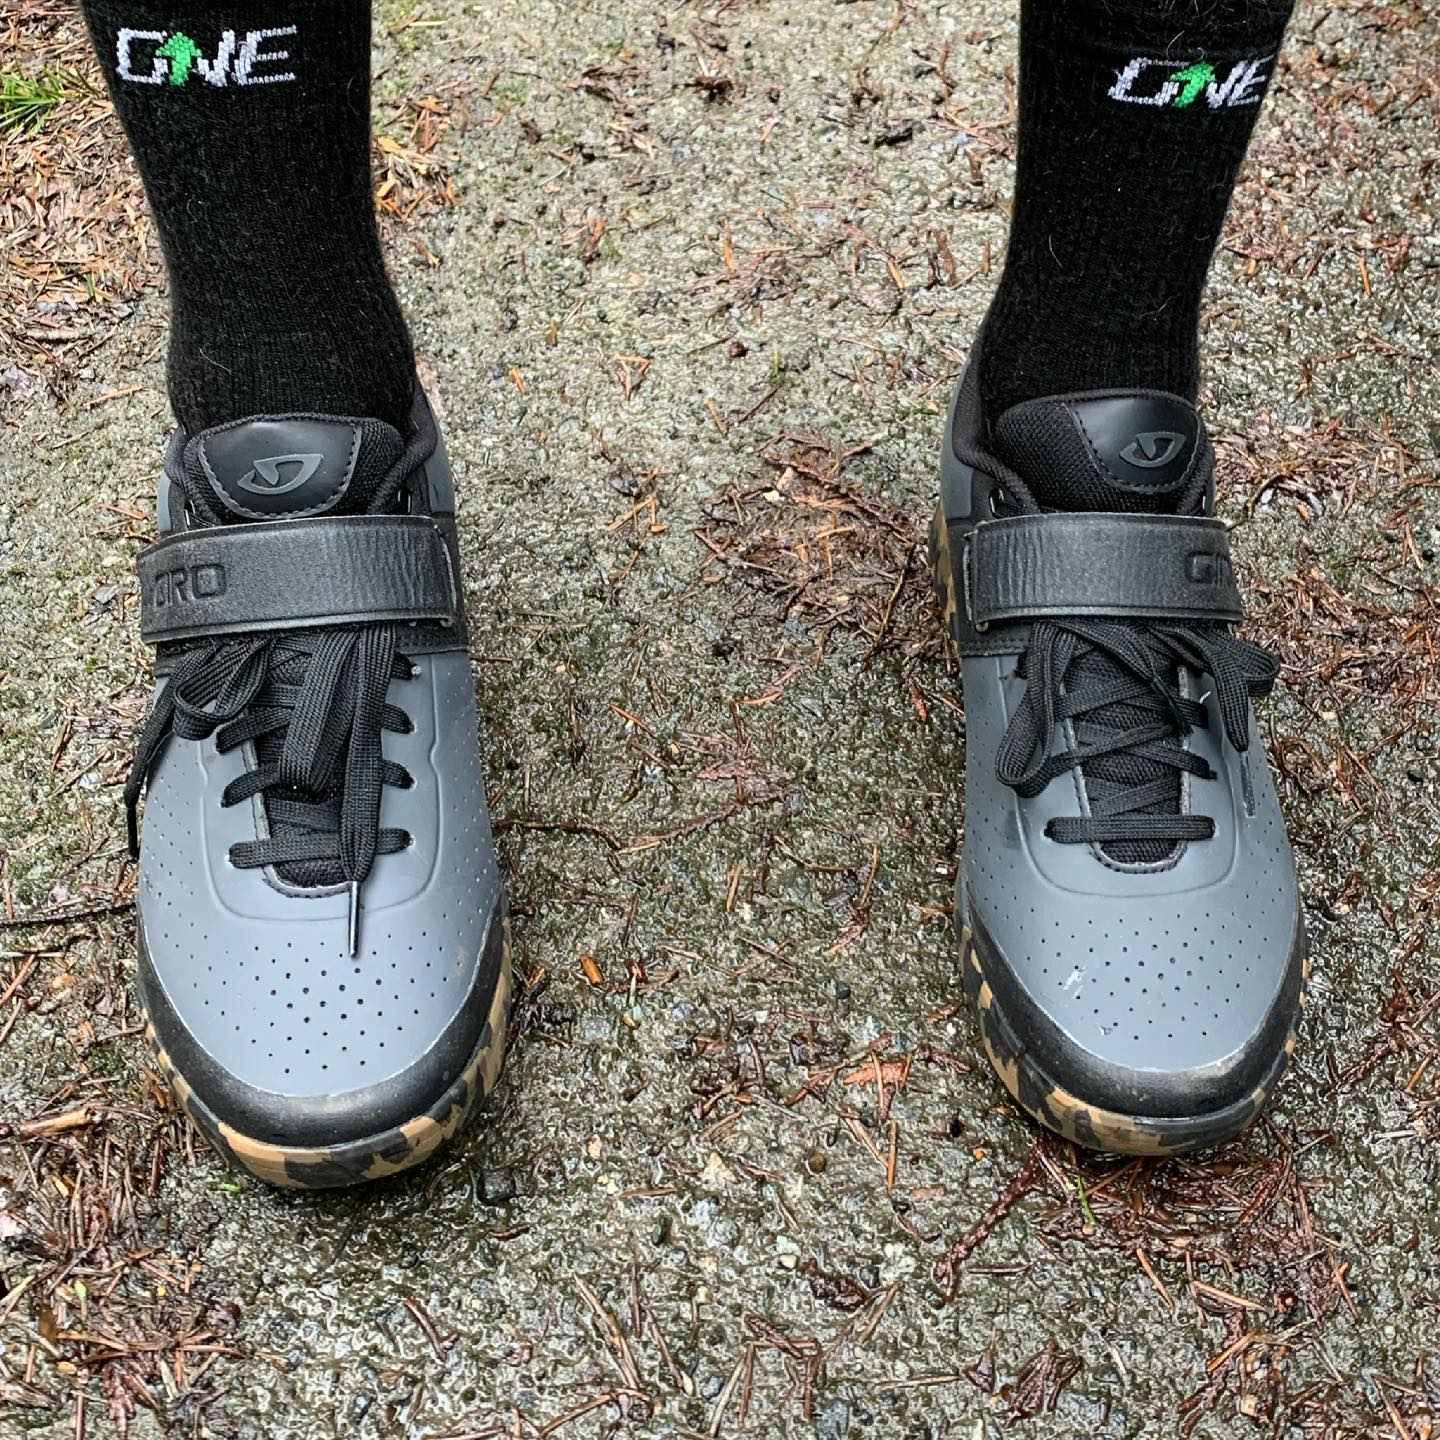 New shoes! Got these @girocycling Chamber shoes from @martysmountaincycle a few weeks back and finally got out for a ride in them last weekend. Super comfy. Looking forward to more rides to them them broken I'm a bit more. #mtbvi #yyj #mountainbiking #bikesarefun